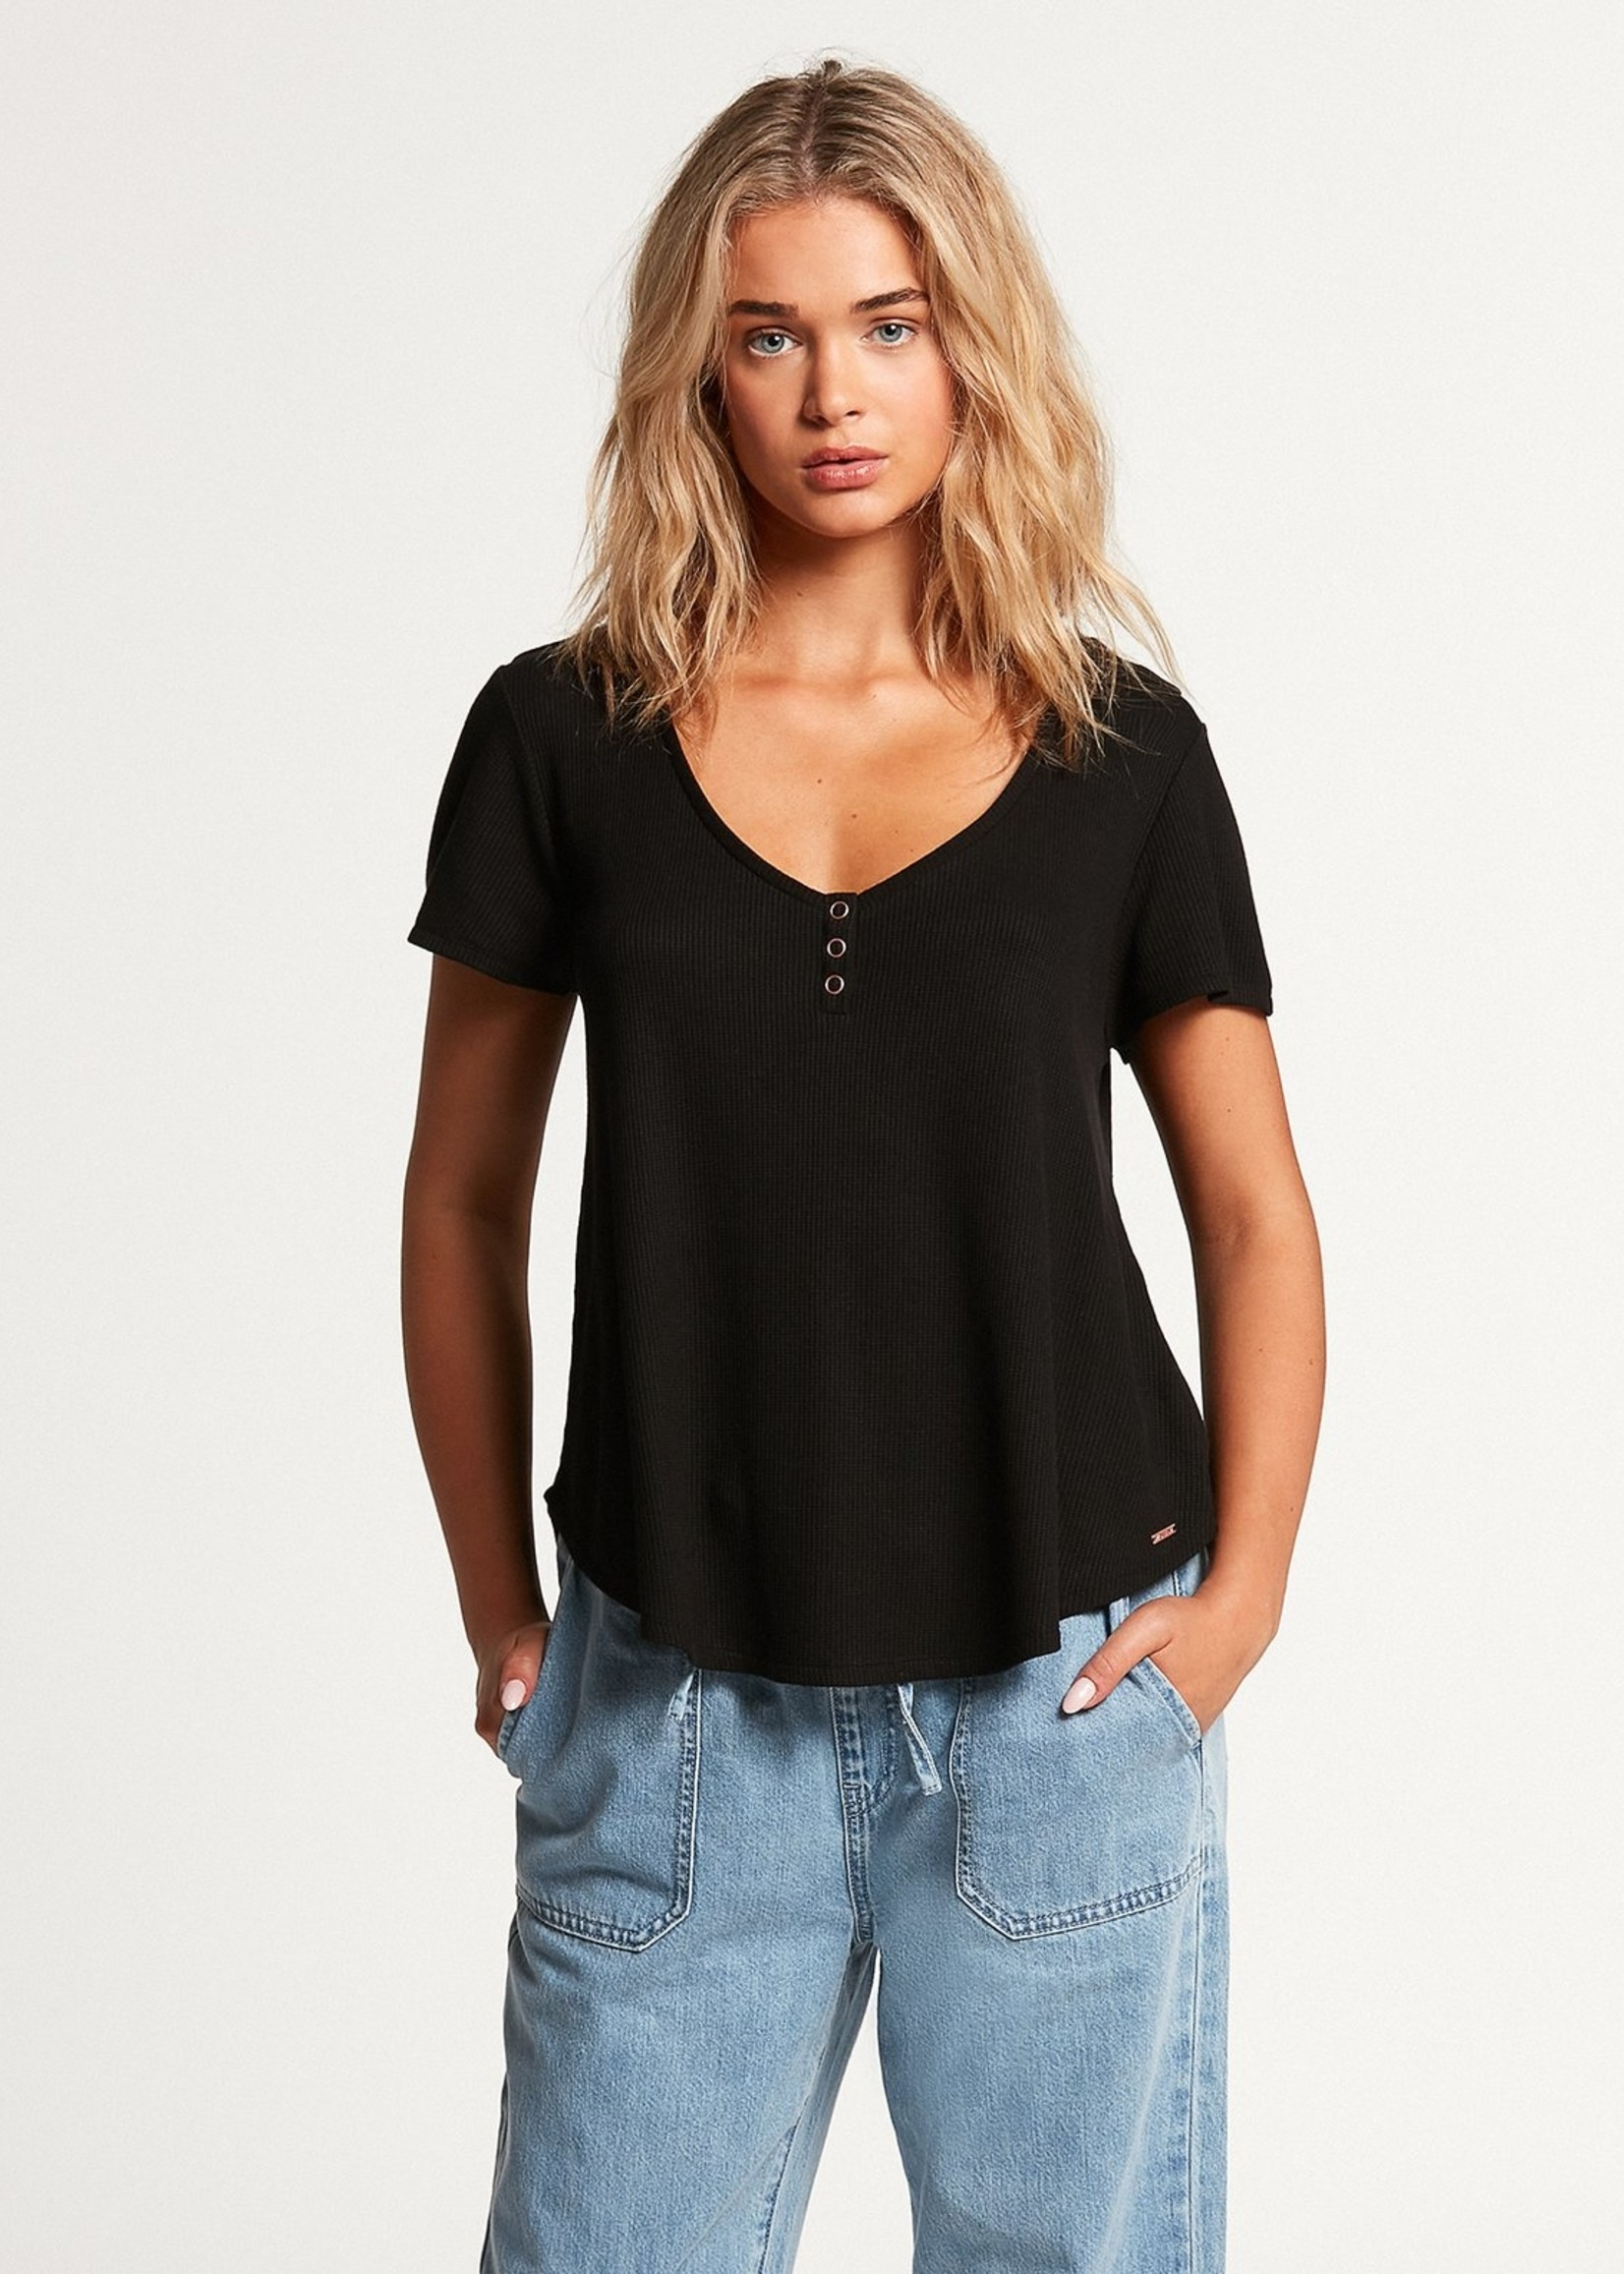 Volcom Lil Thermal Short Sleeve - Black